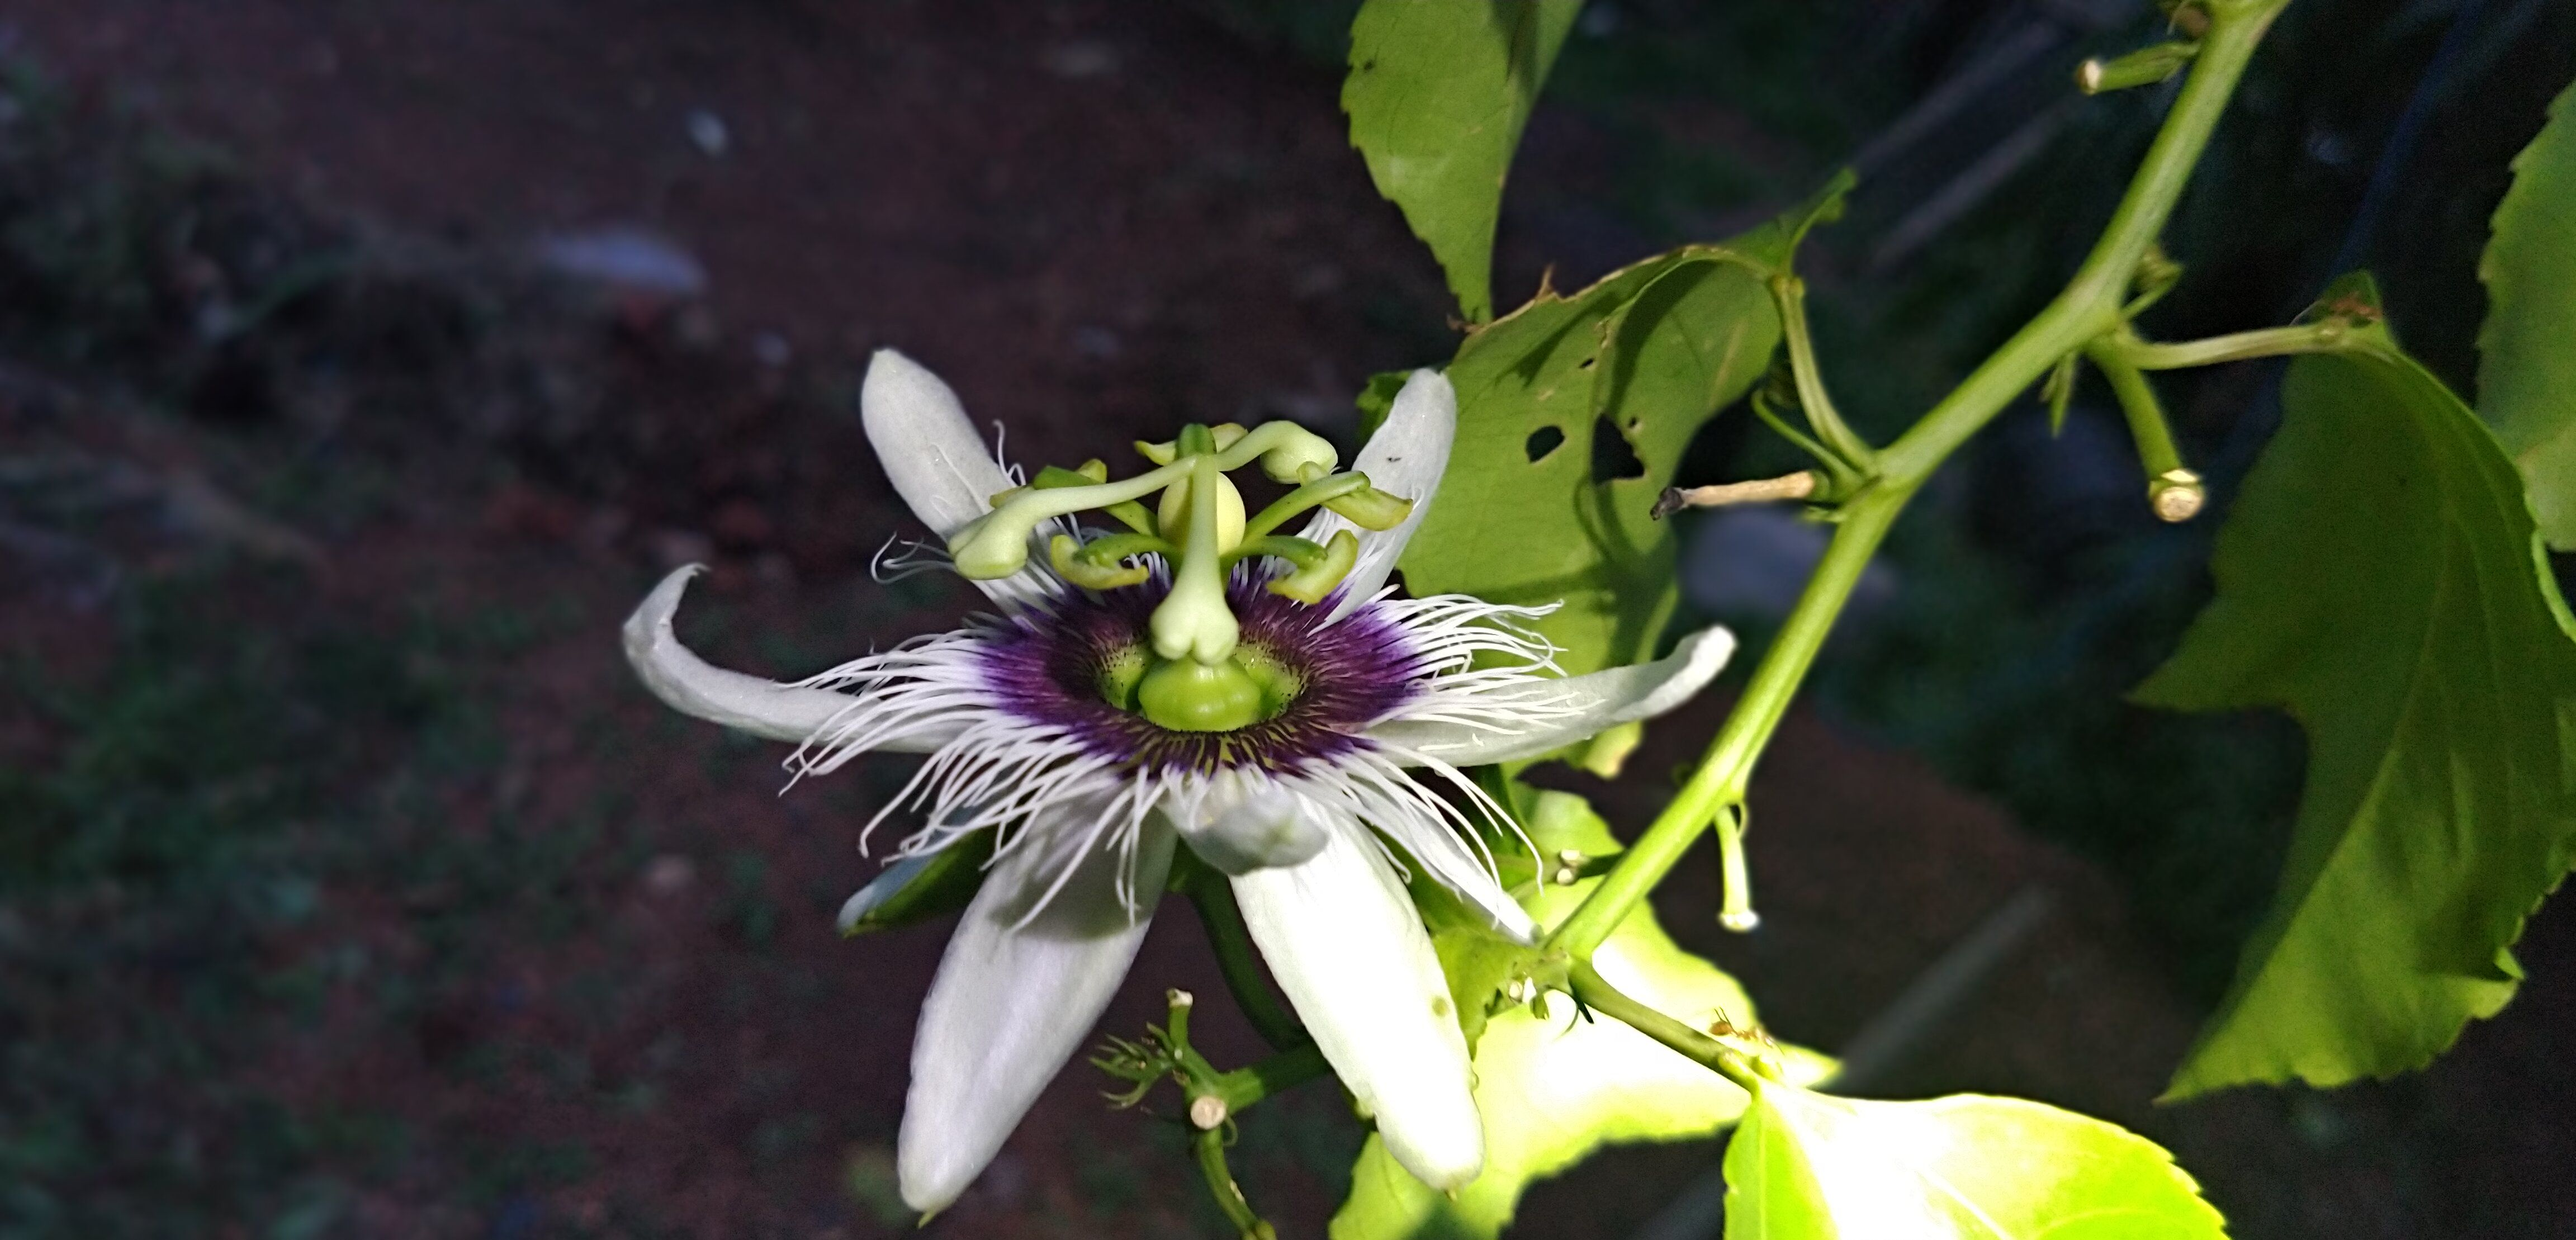 Passion Fruit Flower in 2020 Movies online, Movies to